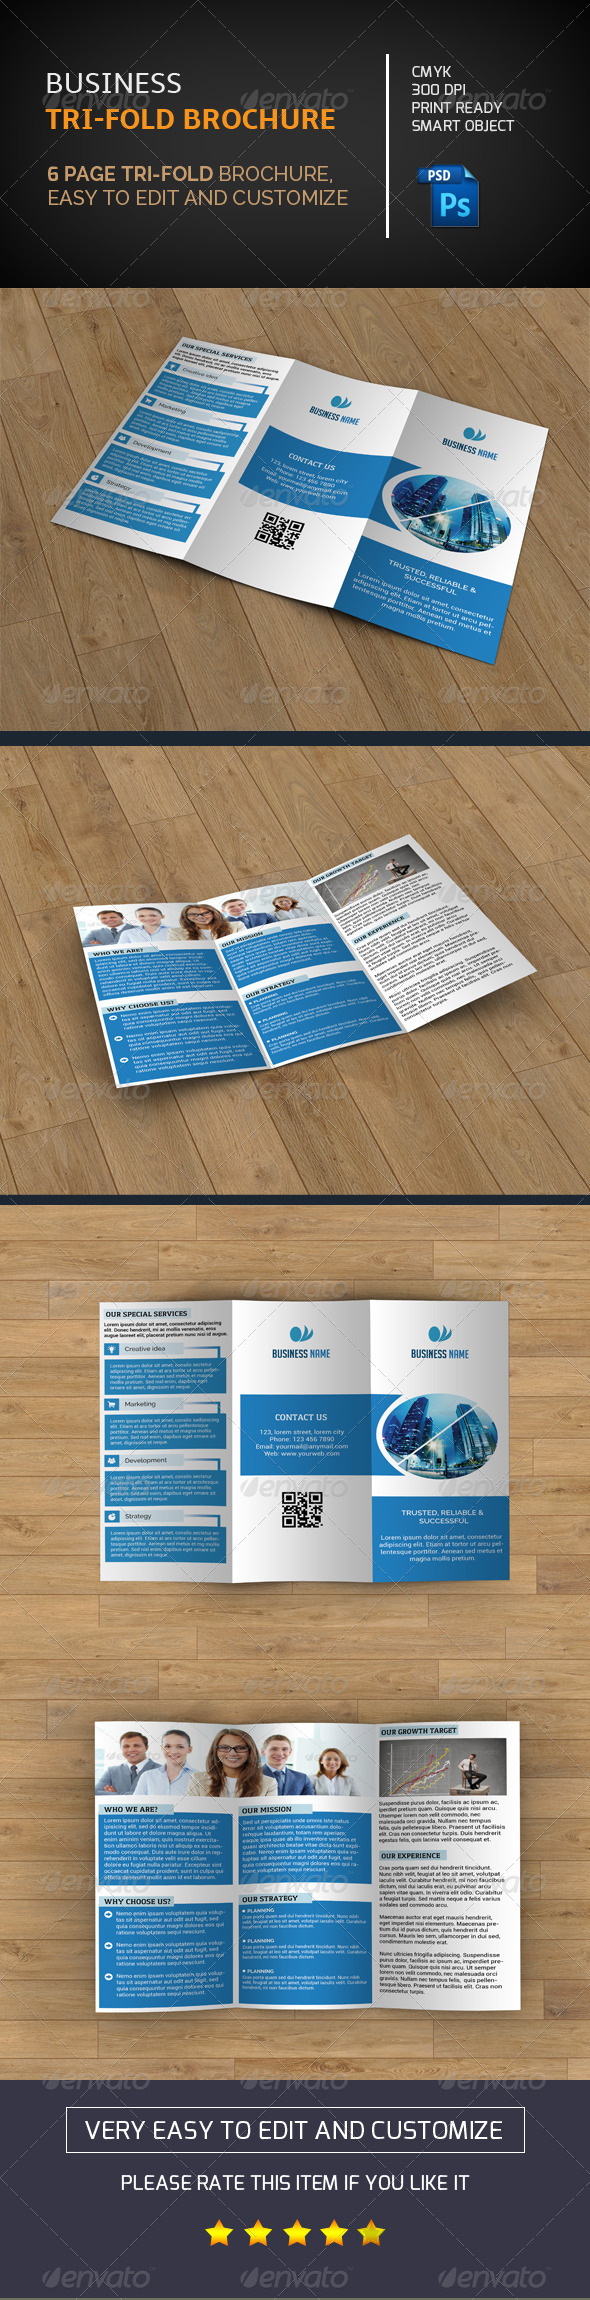 GraphicRiver Business Trifold Brochure-V43 8495374